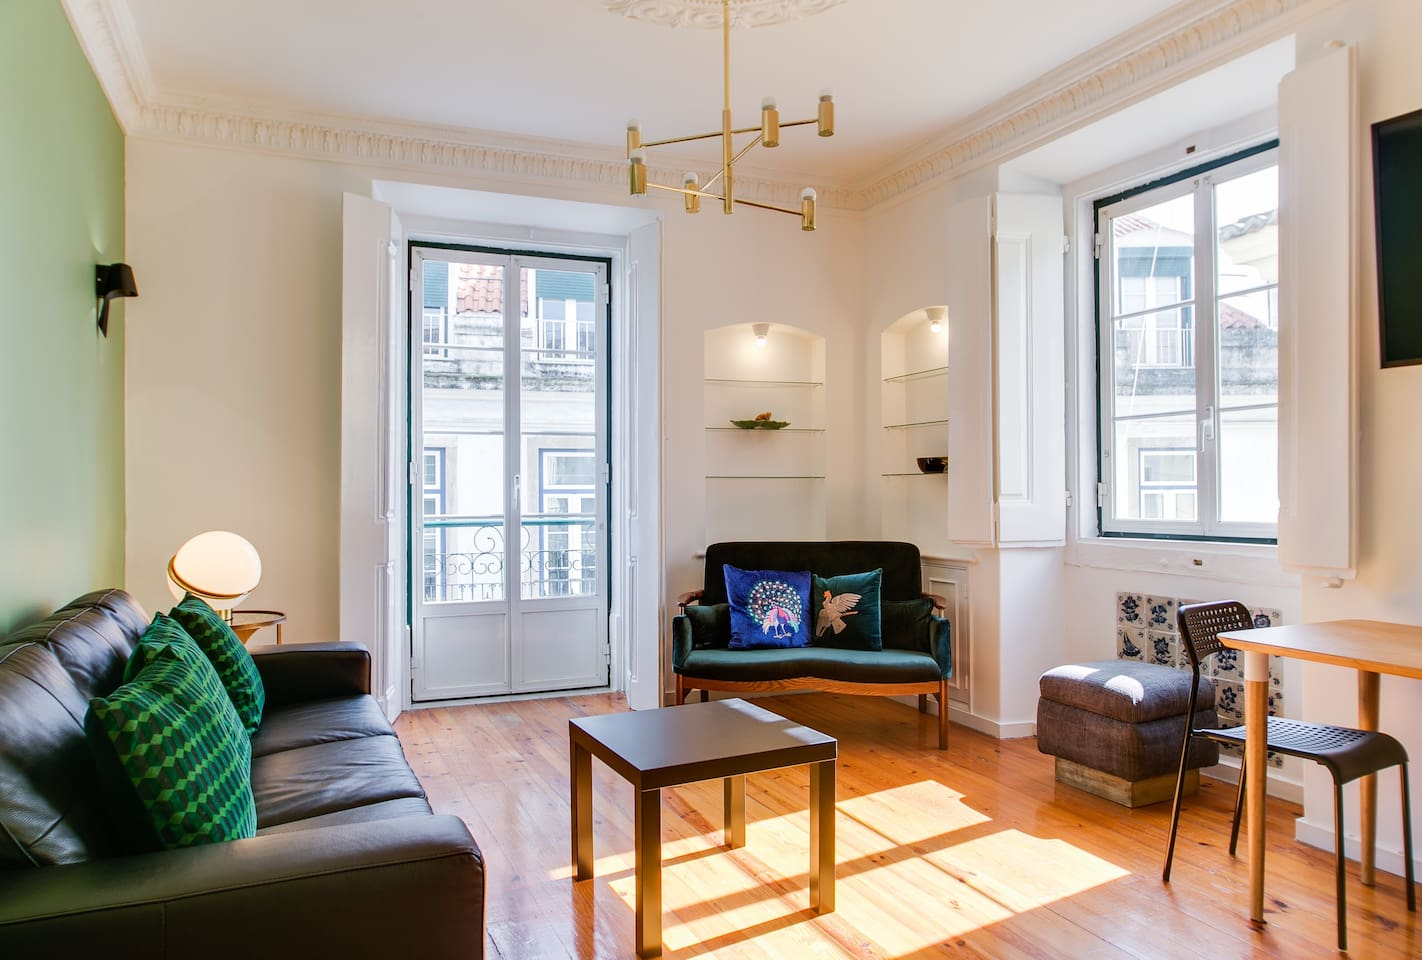 Our large 2 bedroom apartment has just been fully renovated and decorated with an eye for detail.